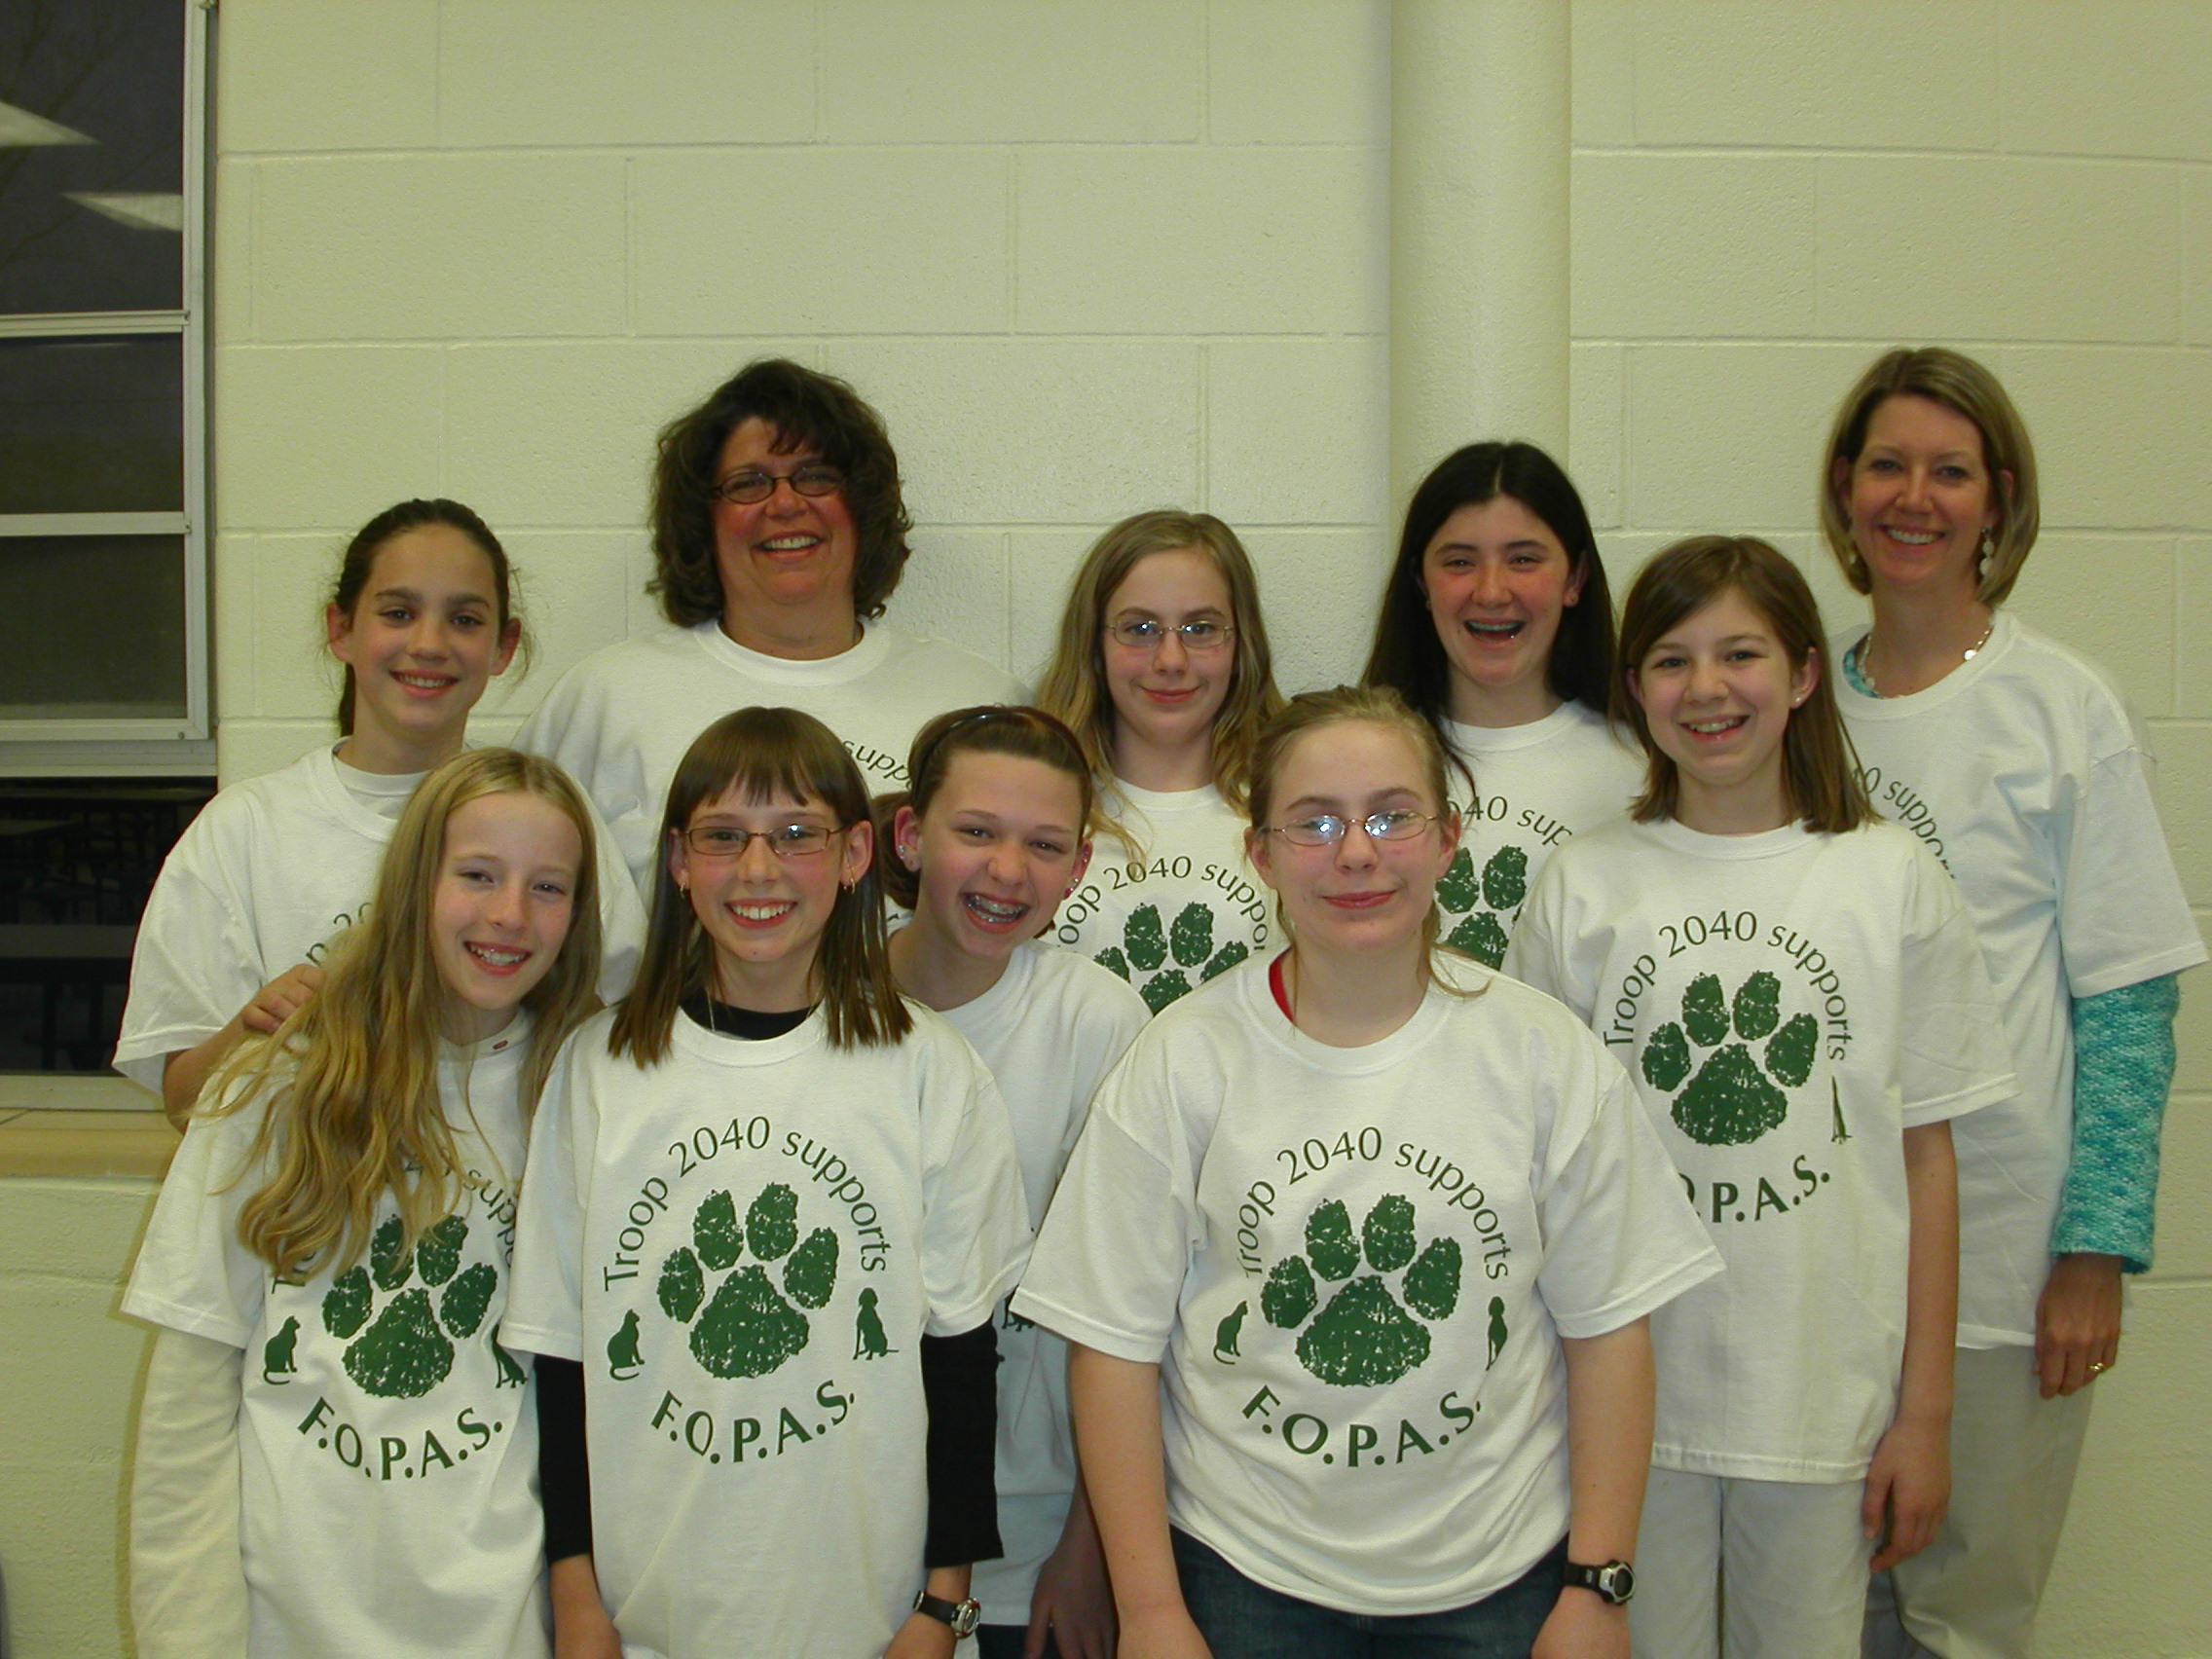 adc4bc434 Custom T-Shirts for Troop 2040 Helps Parkville Animal Shelter ...